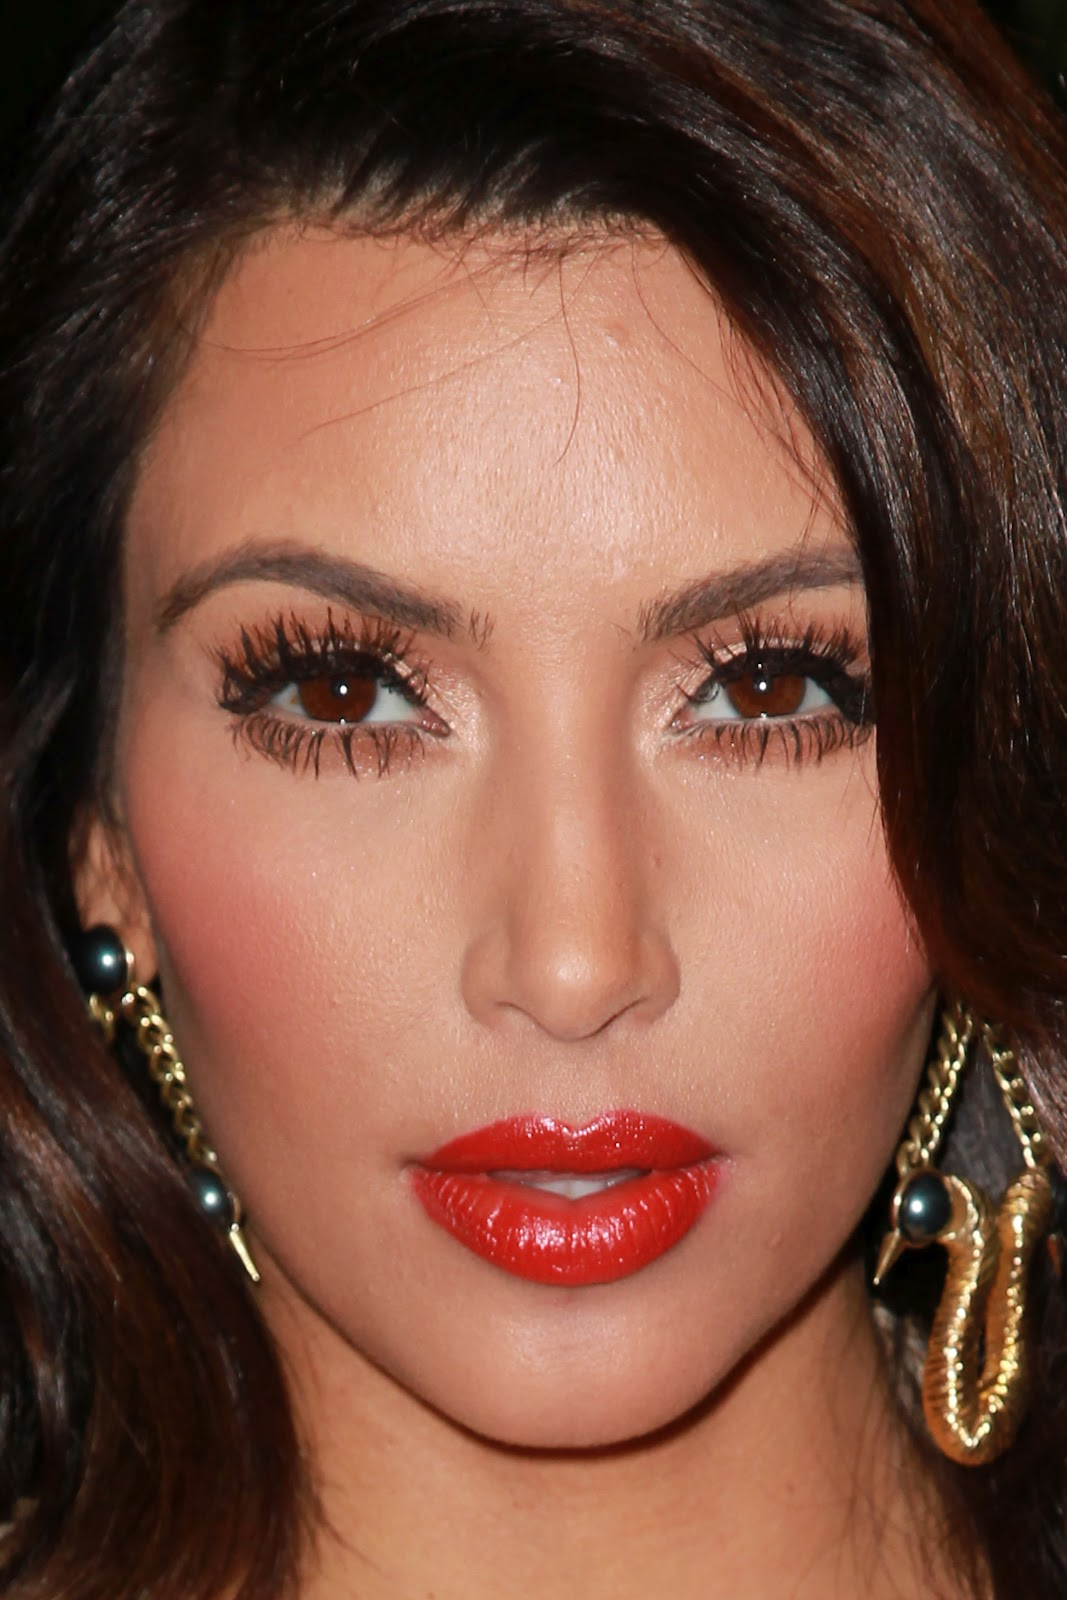 Kardashian Celebrity Makeup Tutorial, Kim Kardashian Makeup